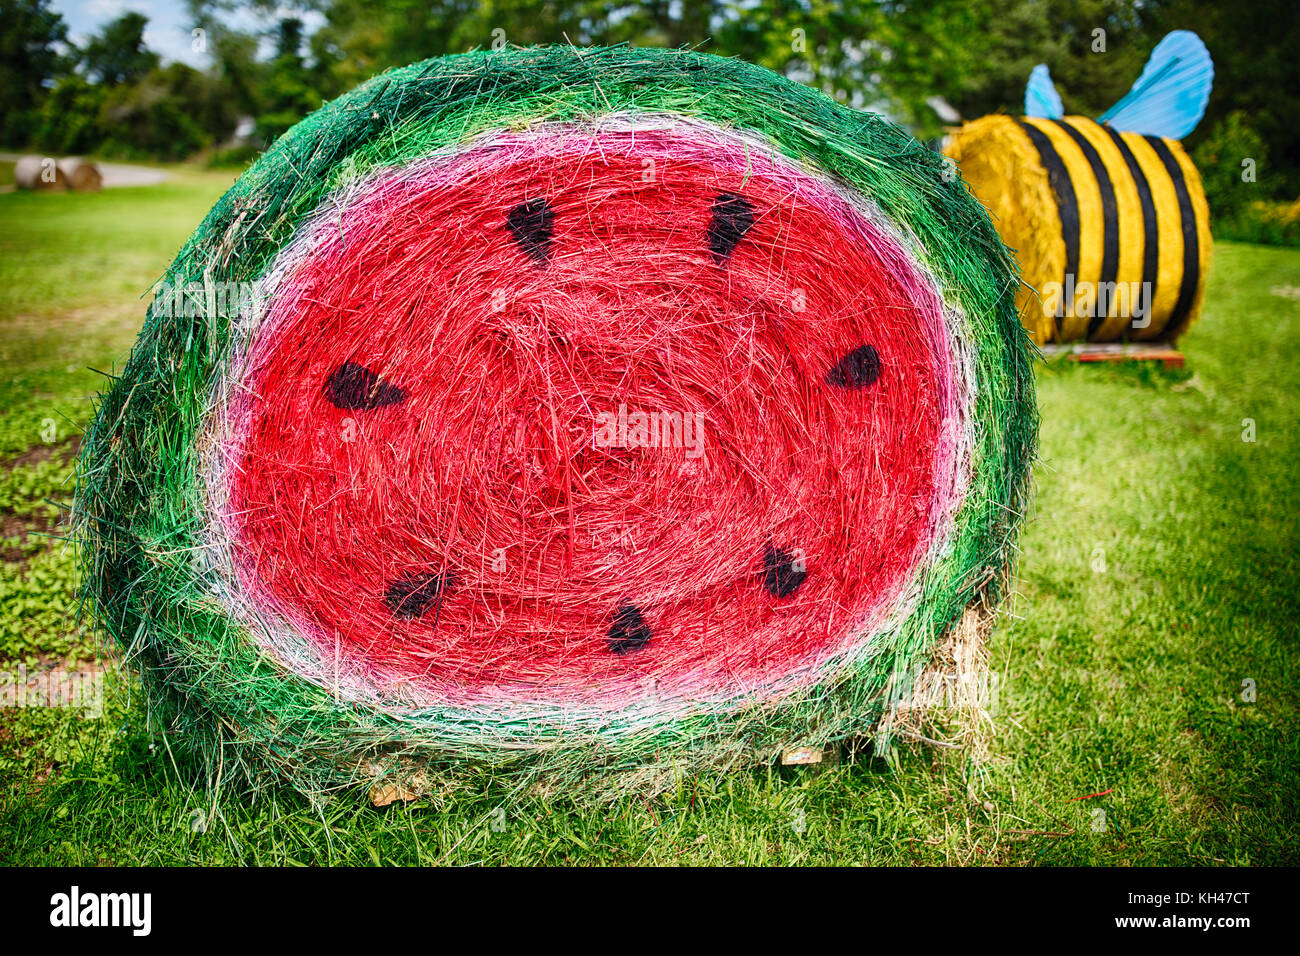 Close Up View of a Hay Bale Painted as a Cut Watermelon, Schaefer Farms, Flemington, New Jersey, USA - Stock Image